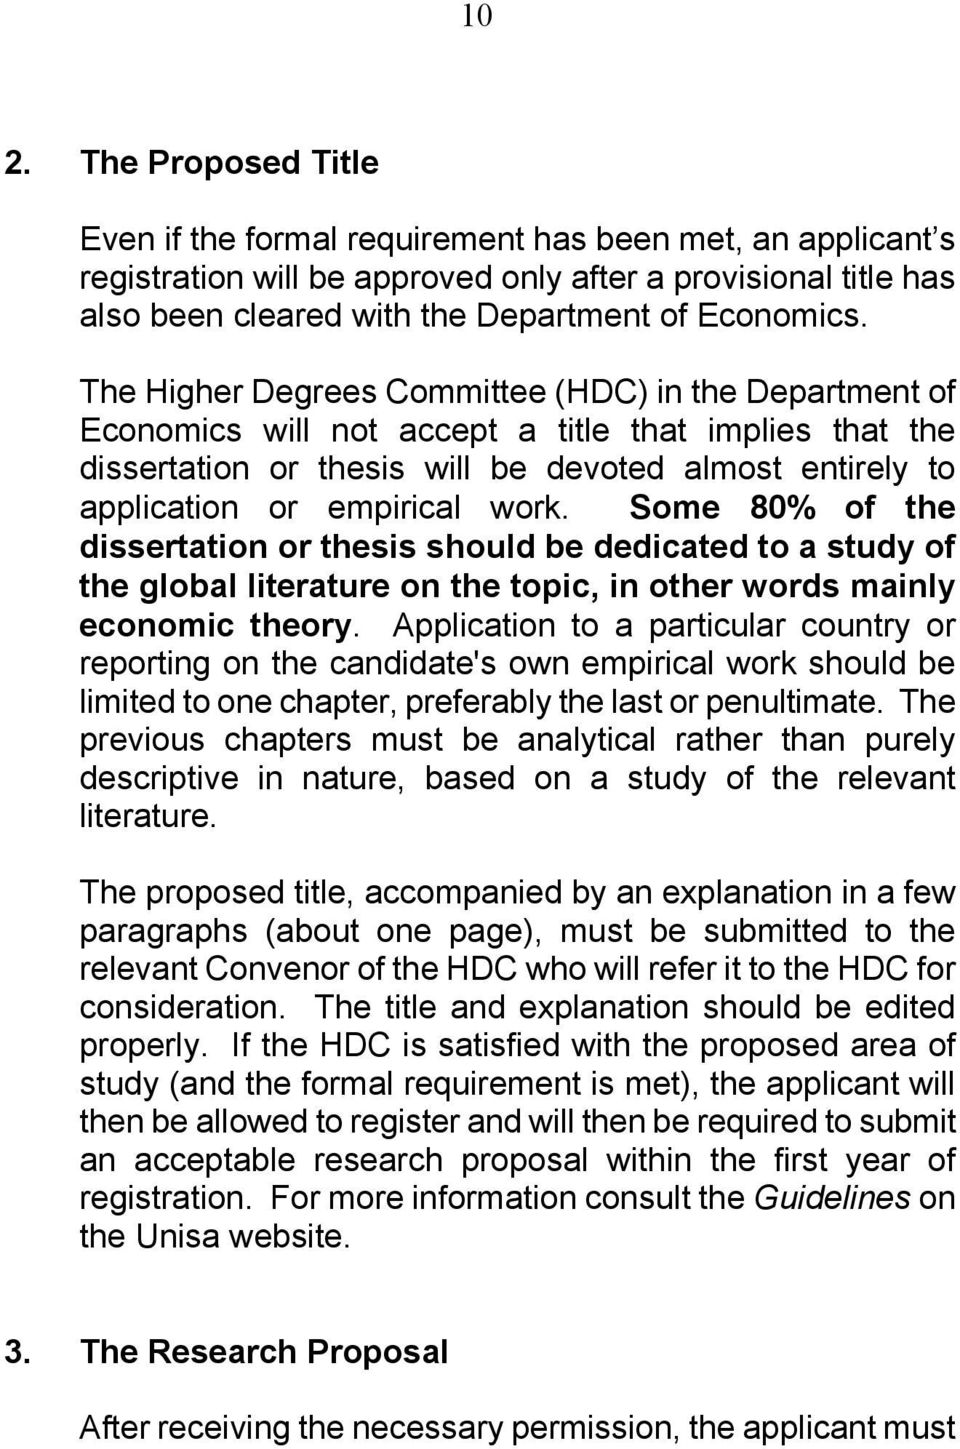 The Higher Degrees Committee (HDC) in the Department of Economics will not accept a title that implies that the dissertation or thesis will be devoted almost entirely to application or empirical work.